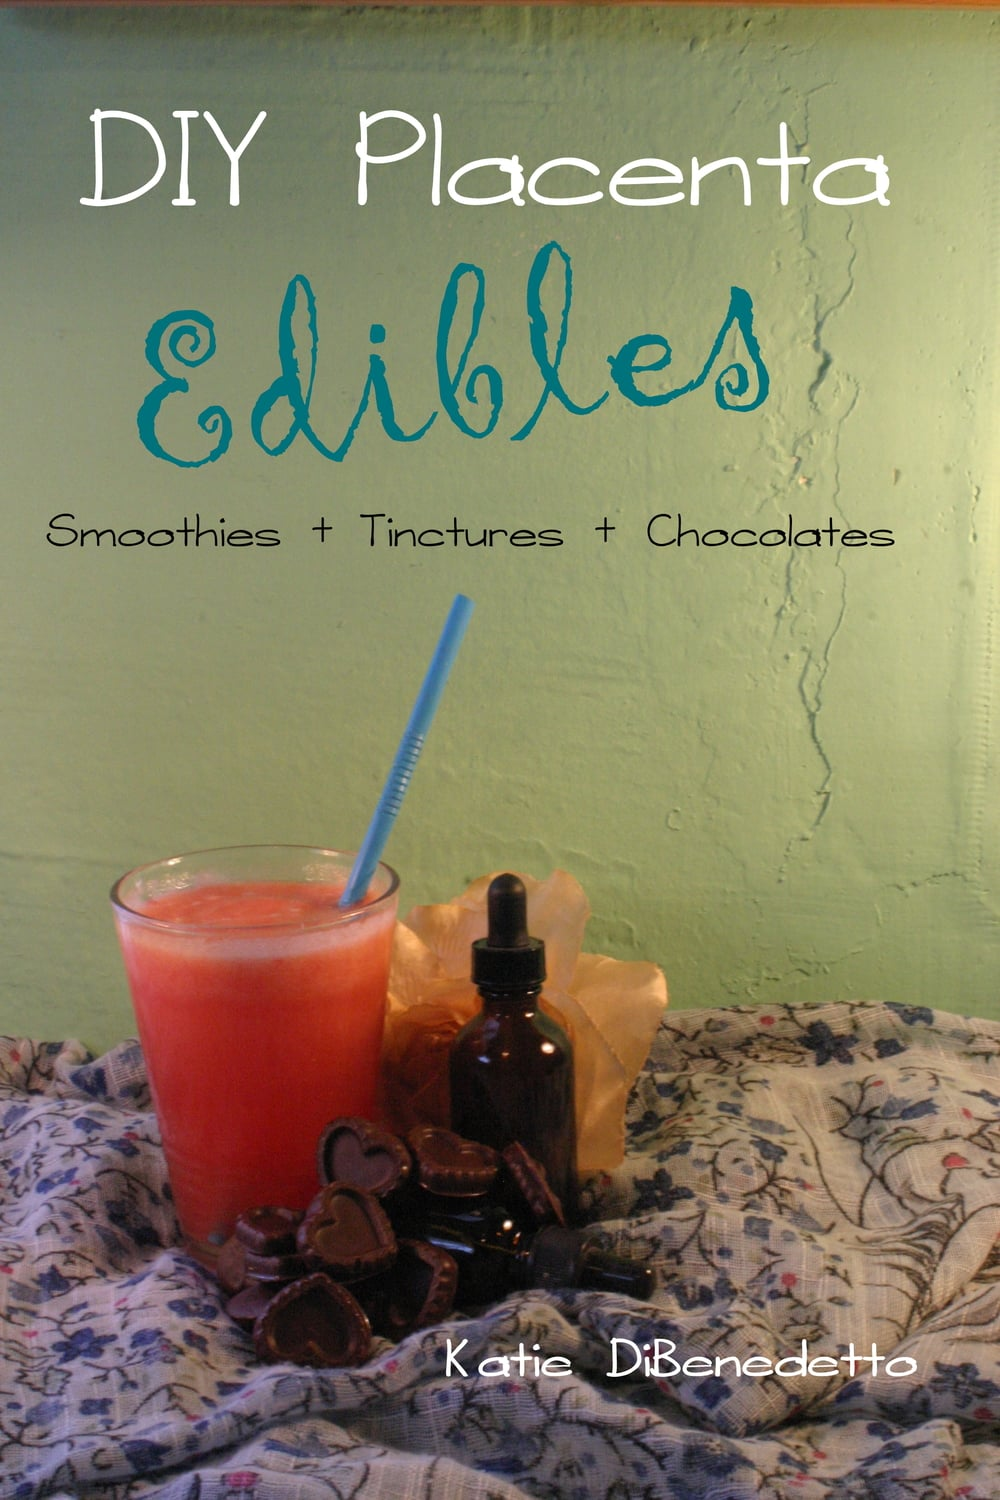 DIY Placenta Edibles | Cock & Crow #placenta #smoothie #DIY